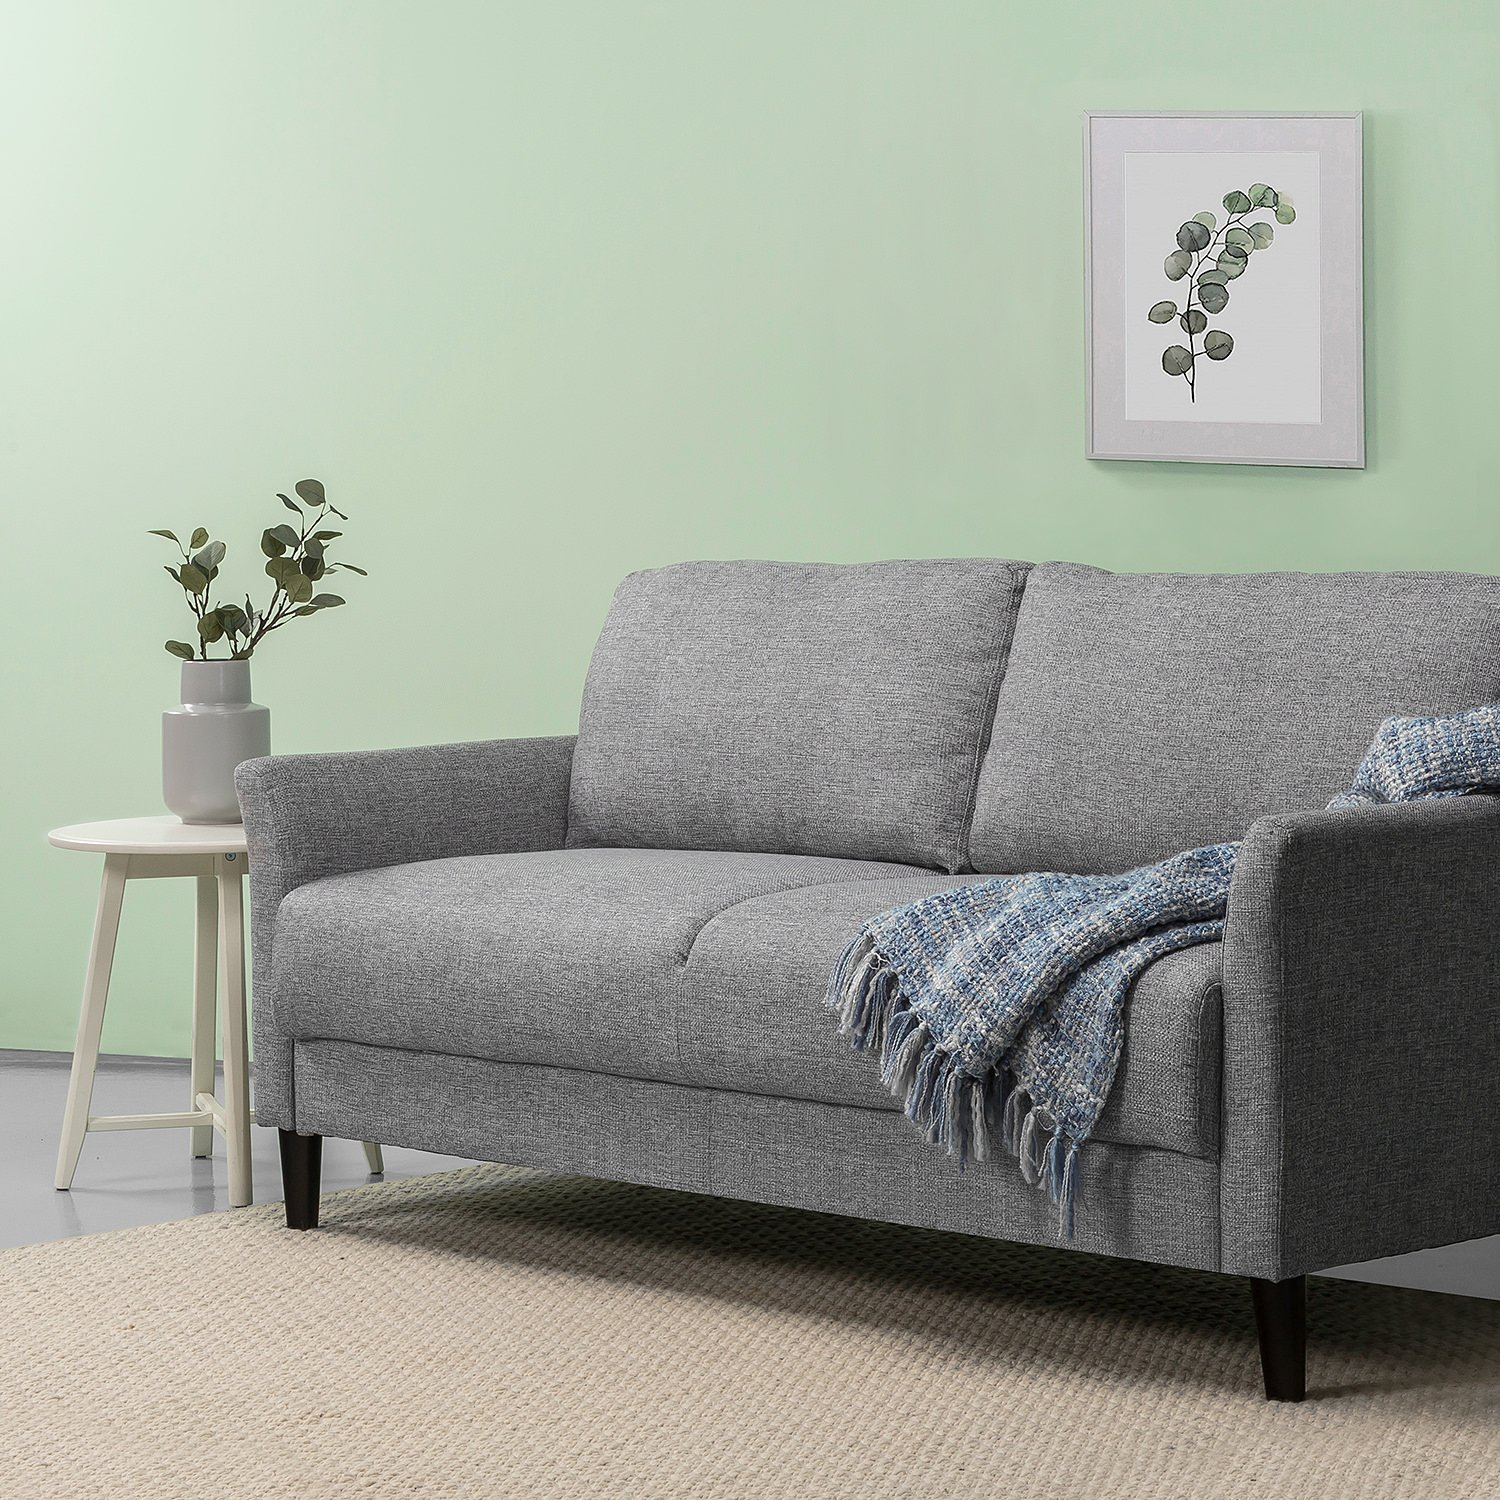 Zinus Classic Upholstered 71in Sofa / Living Room Couch, Soft Grey